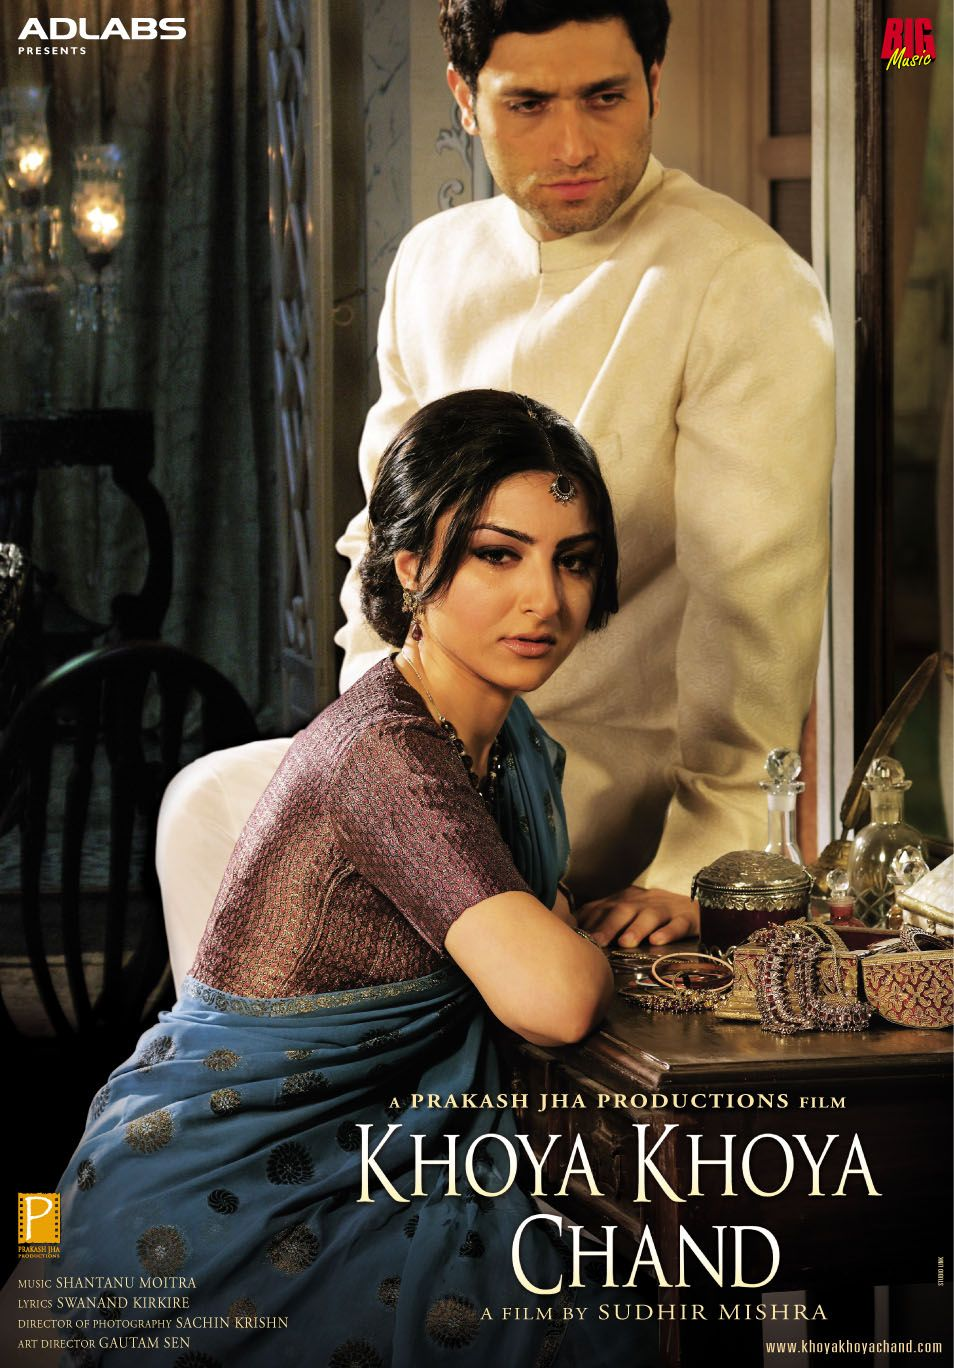 Download Khoya Khoya Chand (2007) Hindi 720p WEBRip x264 AAC [Team DRSD] Torrent